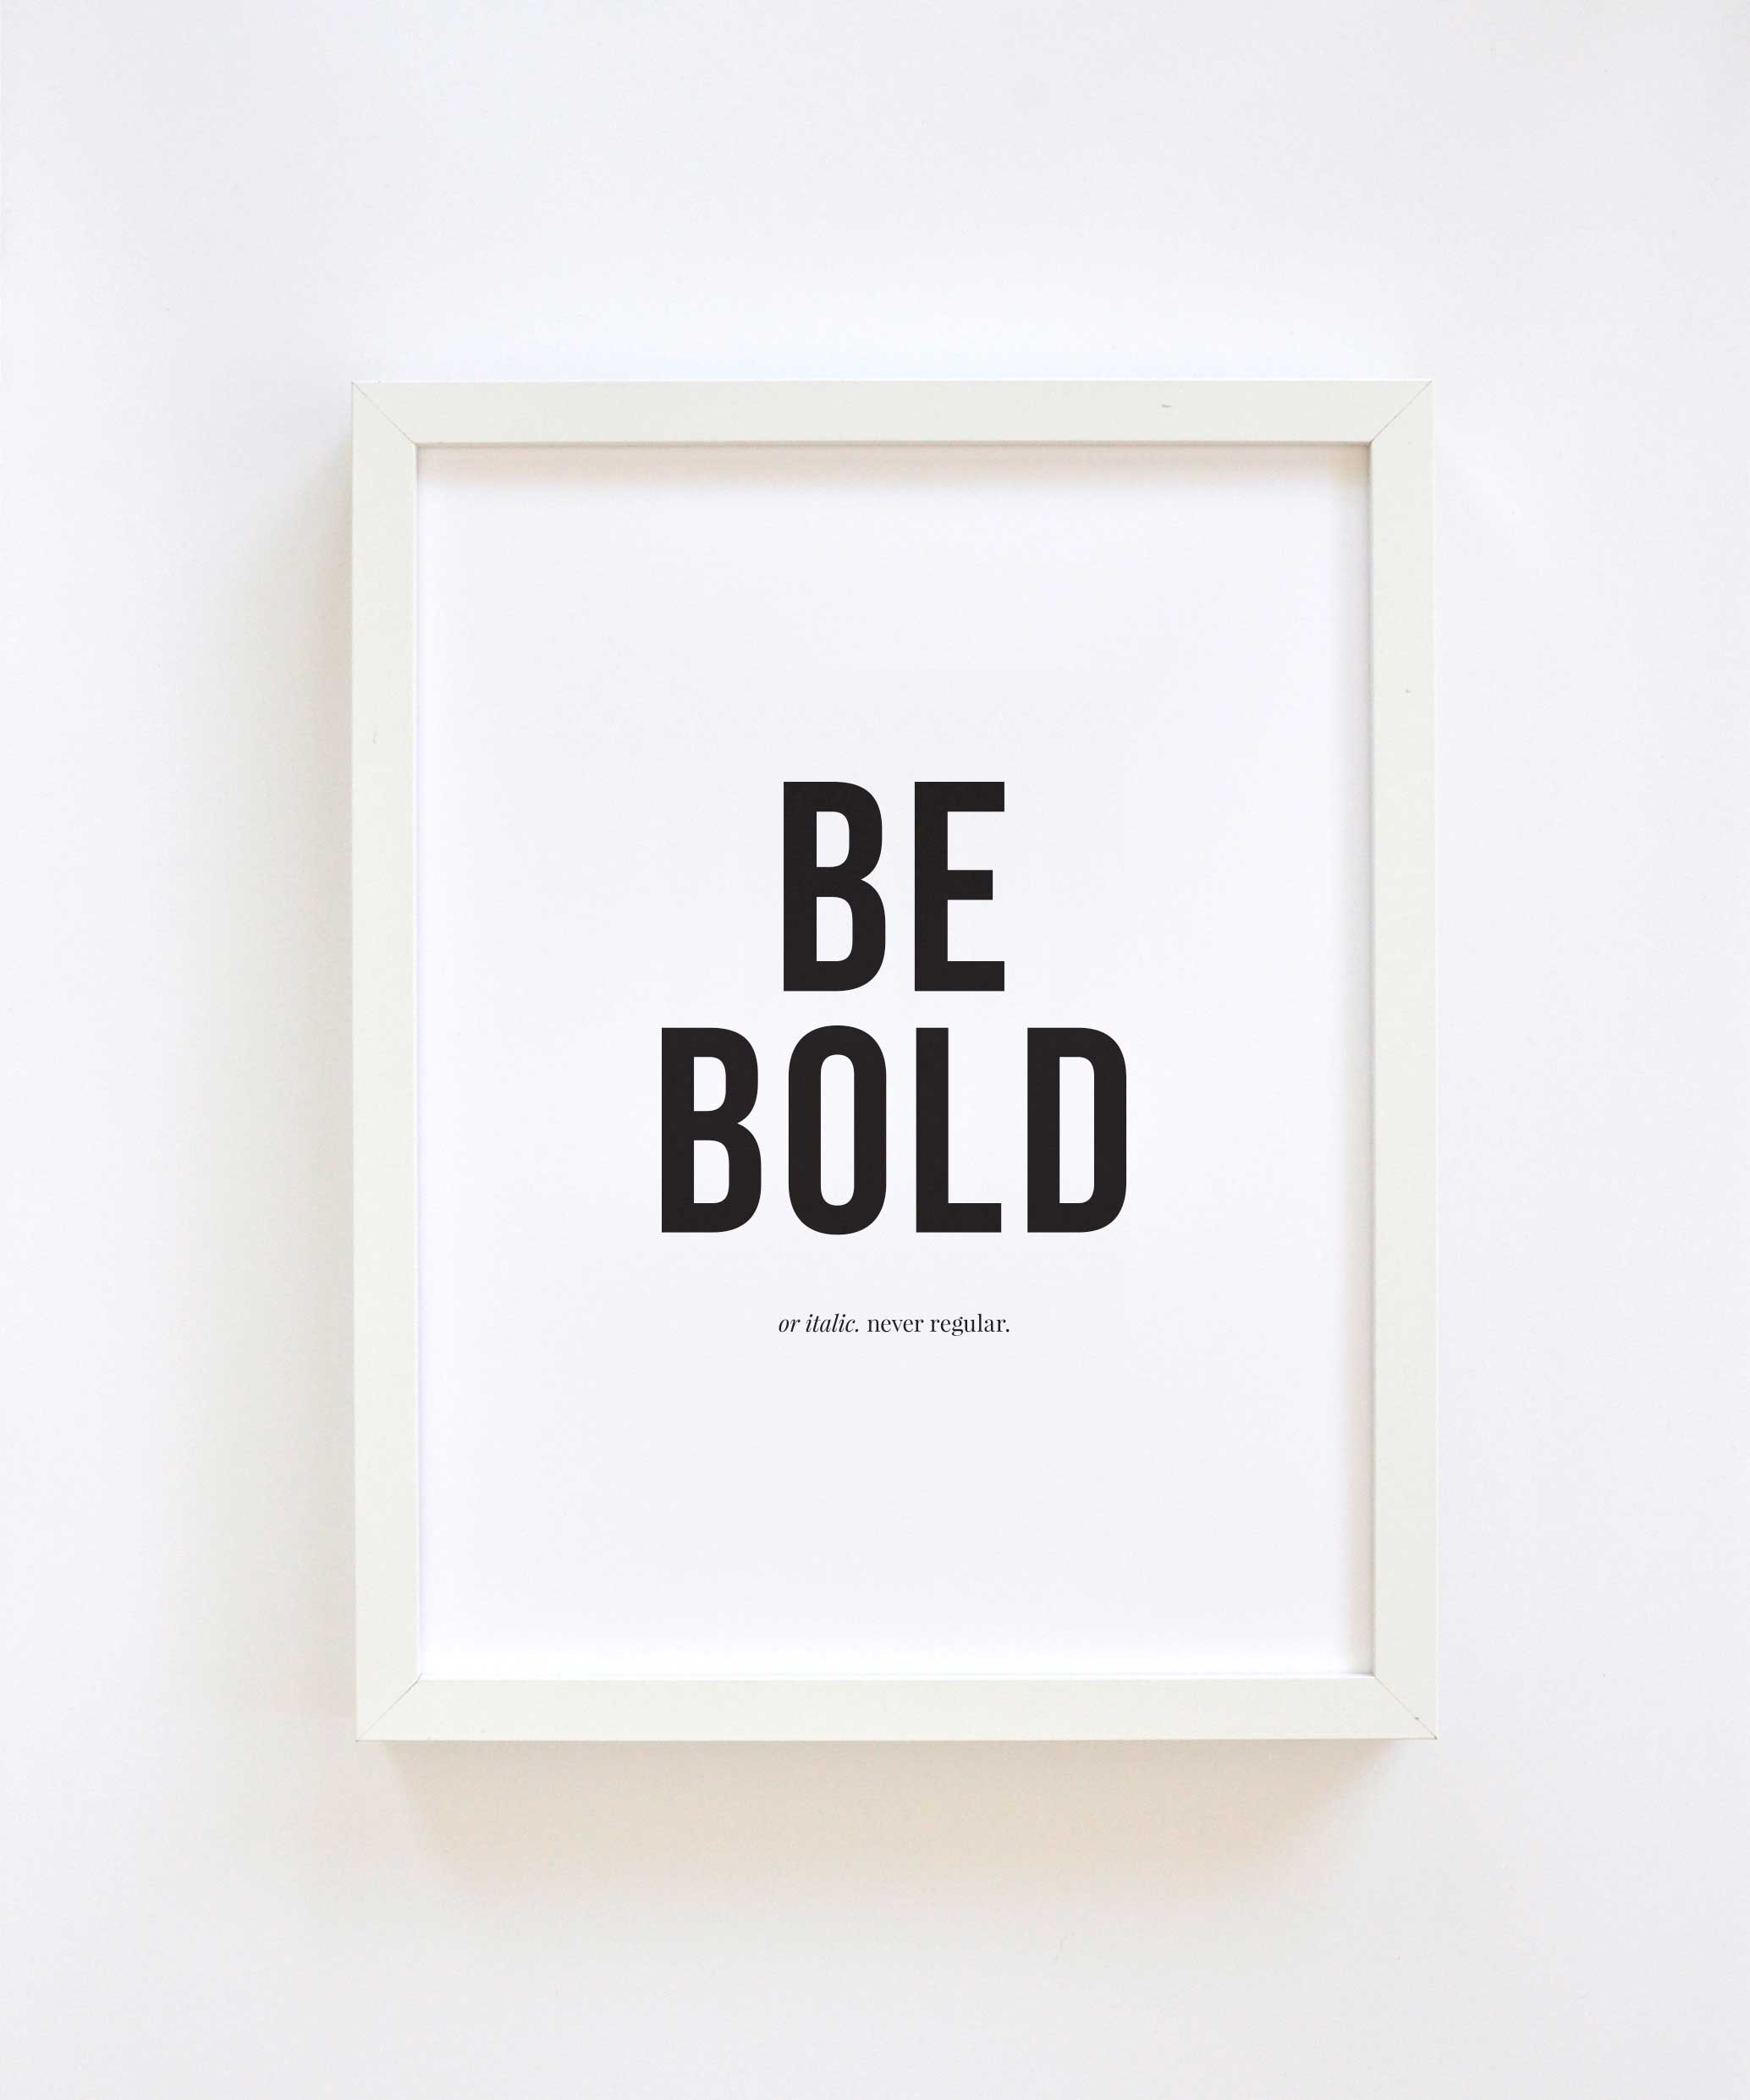 BE BOLD - 3 Must Haves for Strong Brands by Swell Made Co.